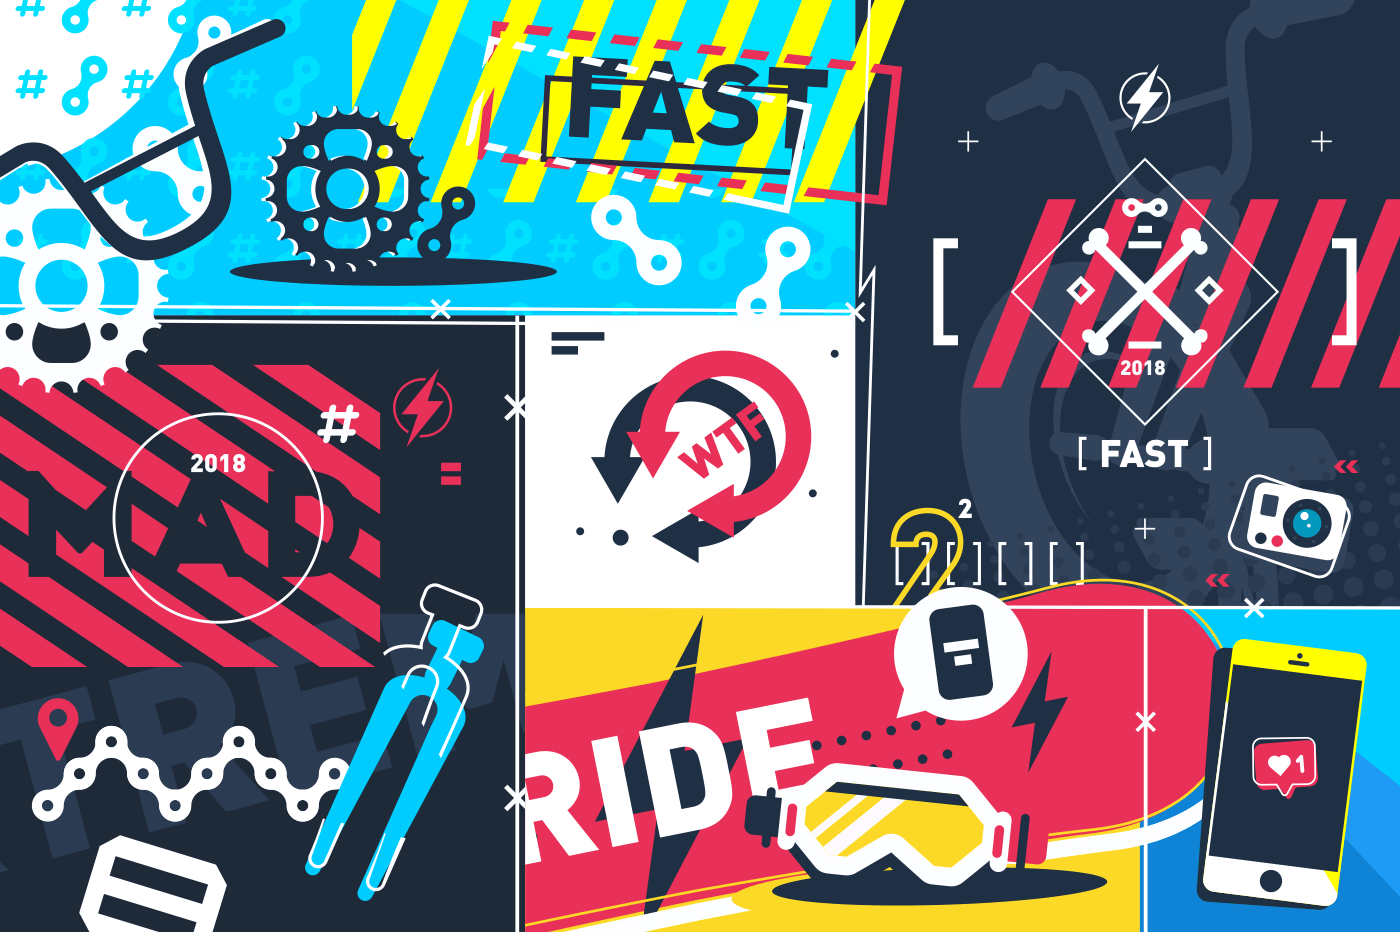 Extreme sport abstract background. Fast ride on bike. Vector illustration